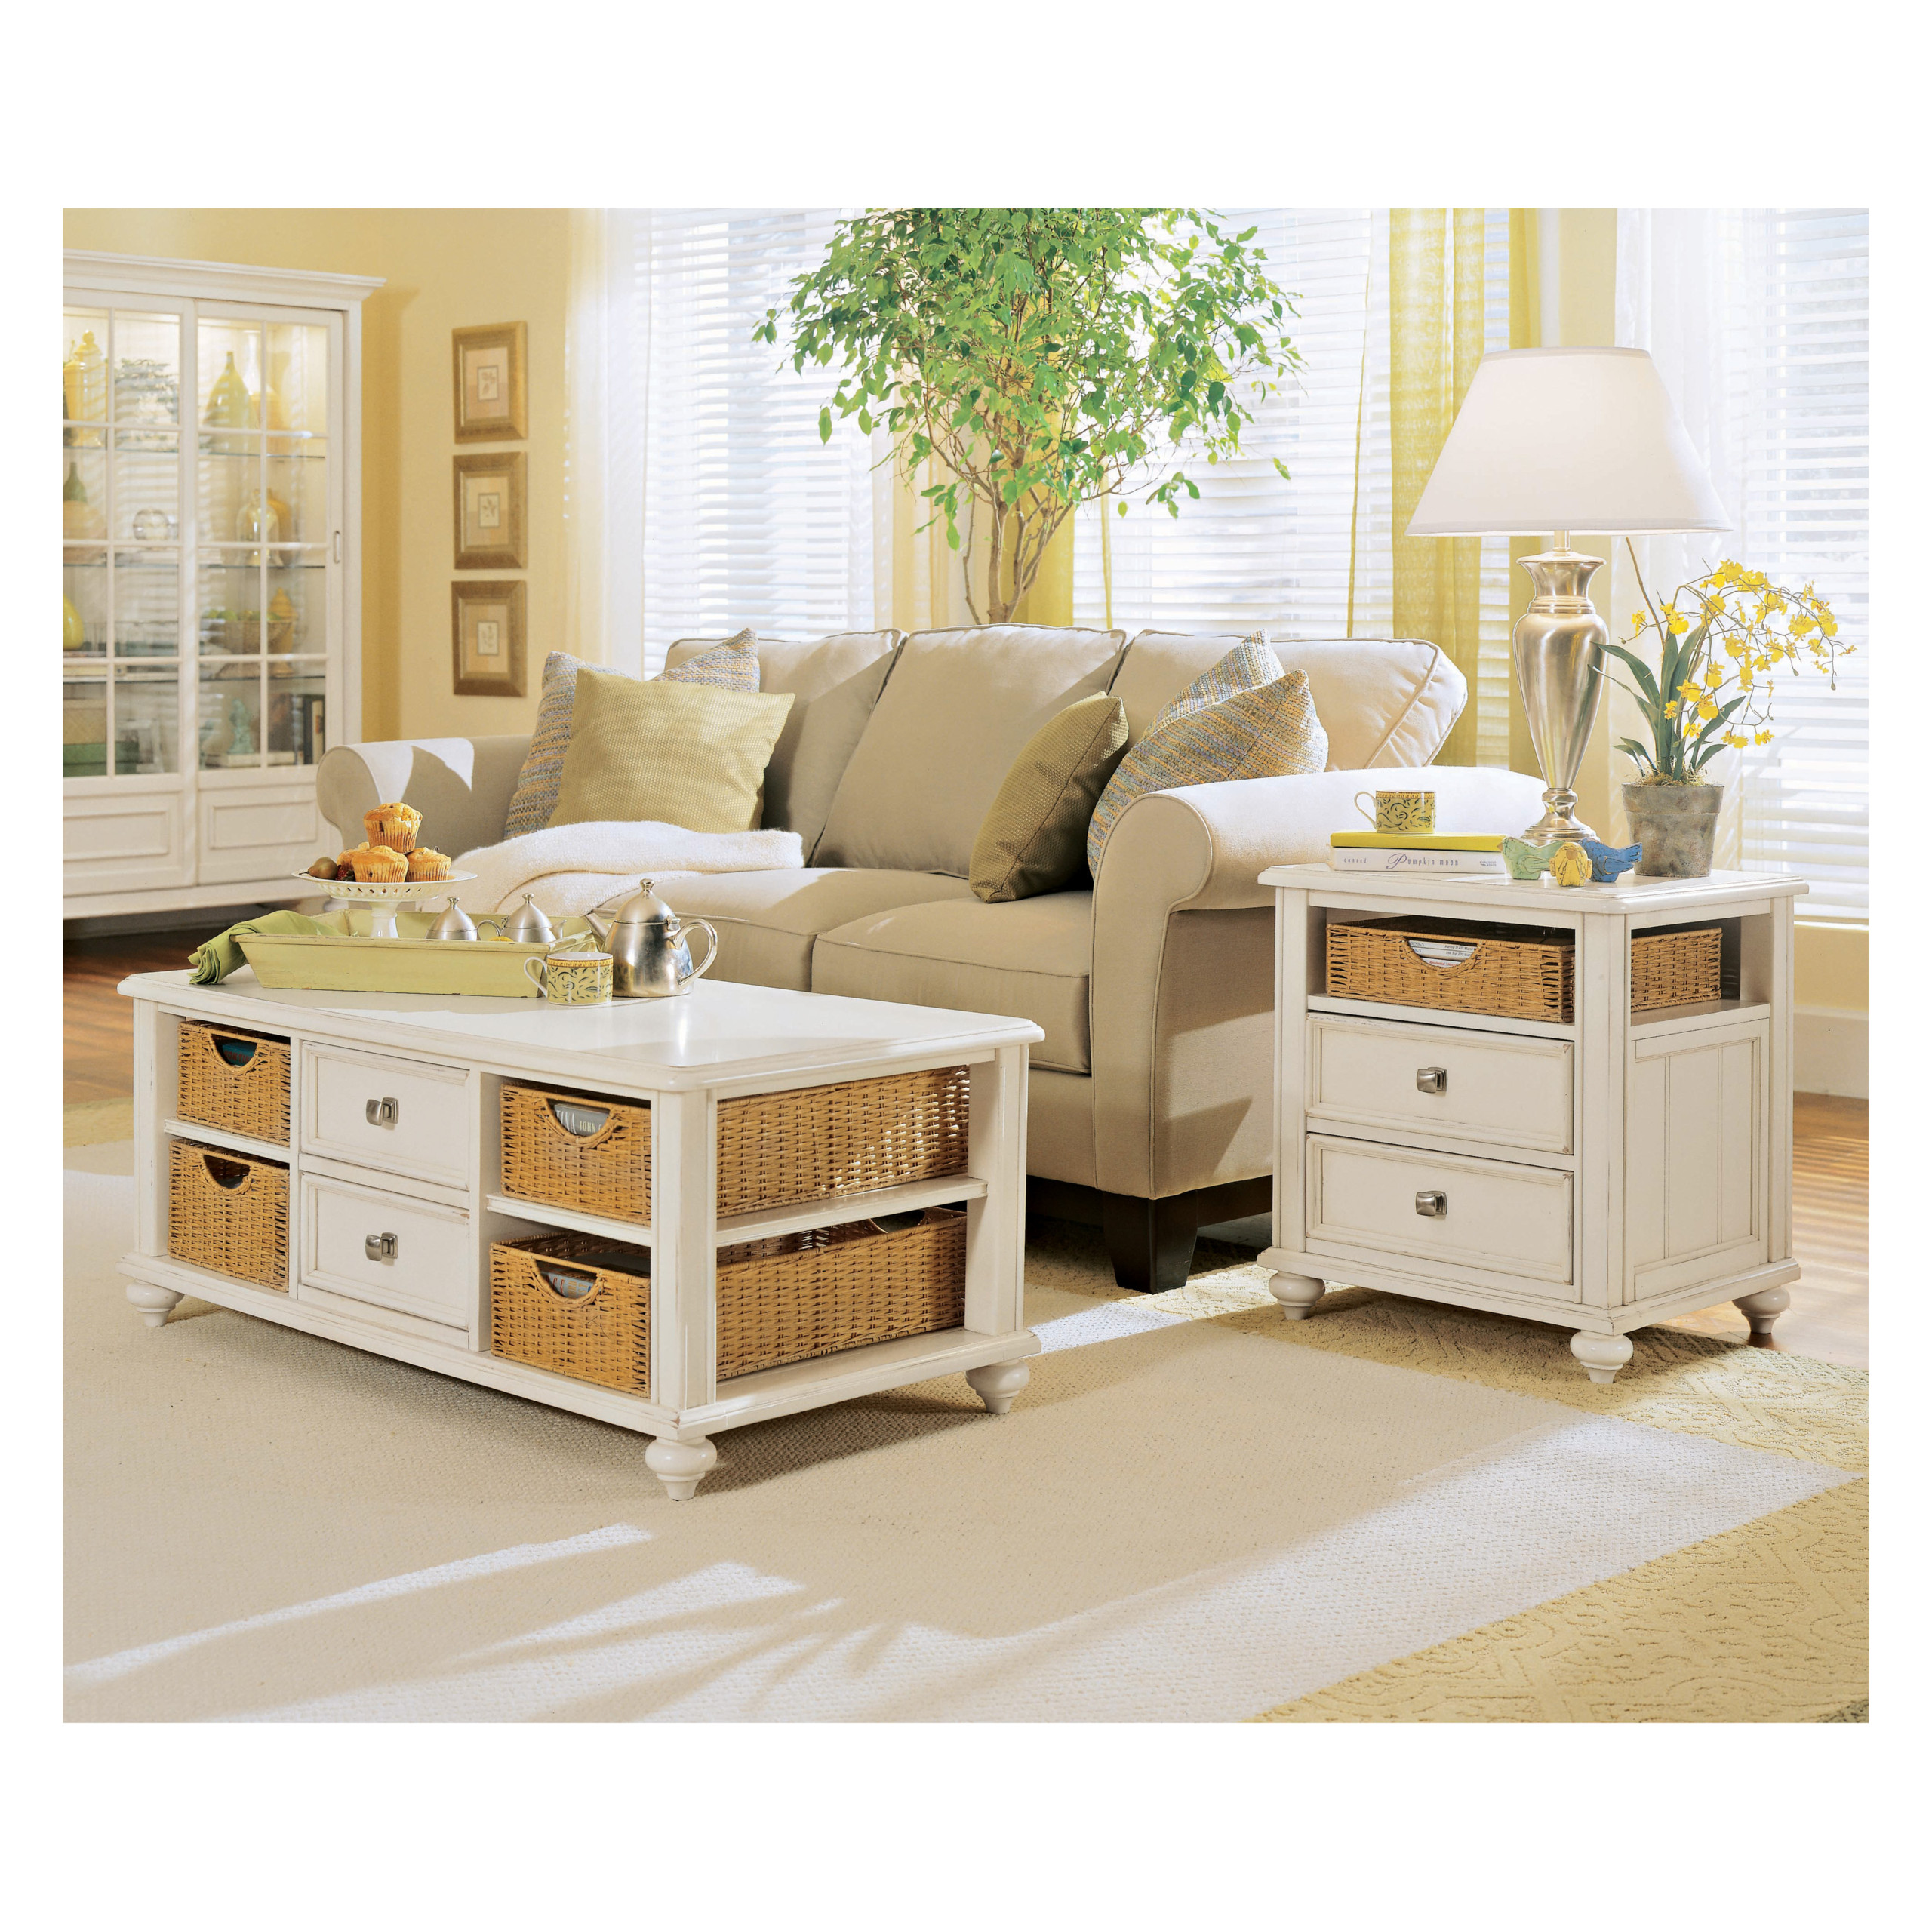 Coffee Table With Storage Baskets You Ll Love In 2021 Visualhunt